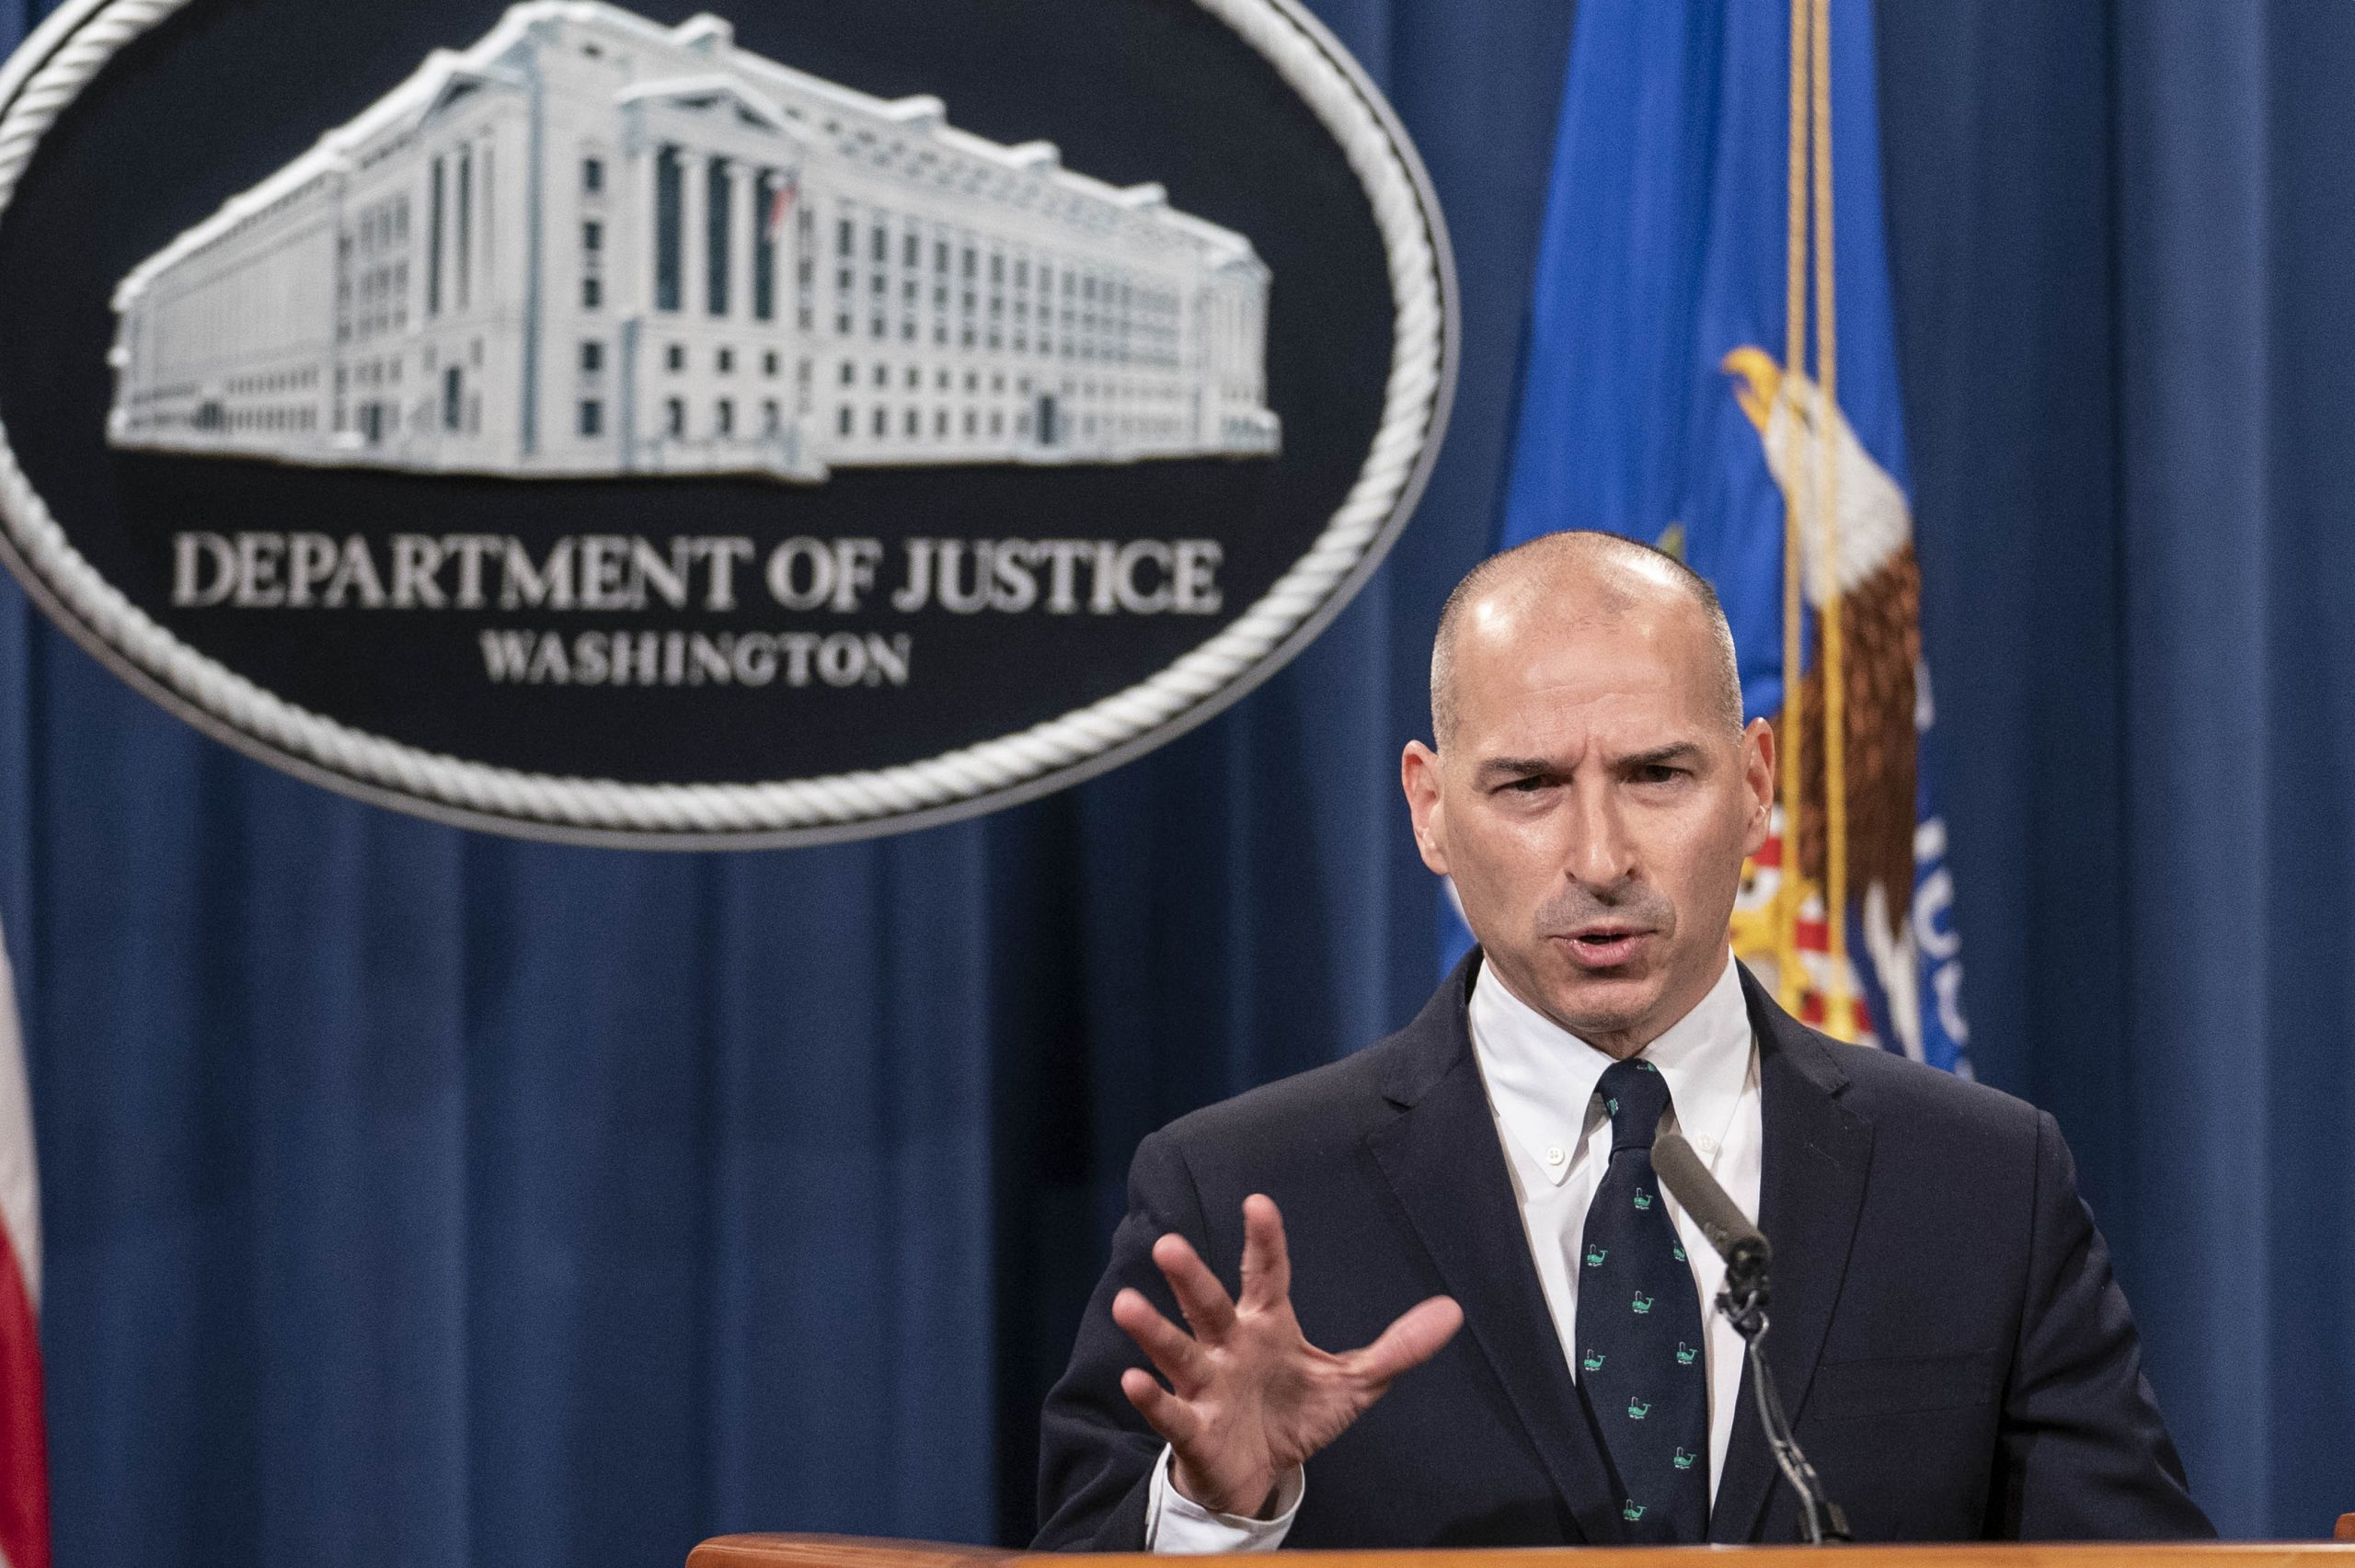 Justice Department warns it's coming for those involved in Capitol violence  - OPB